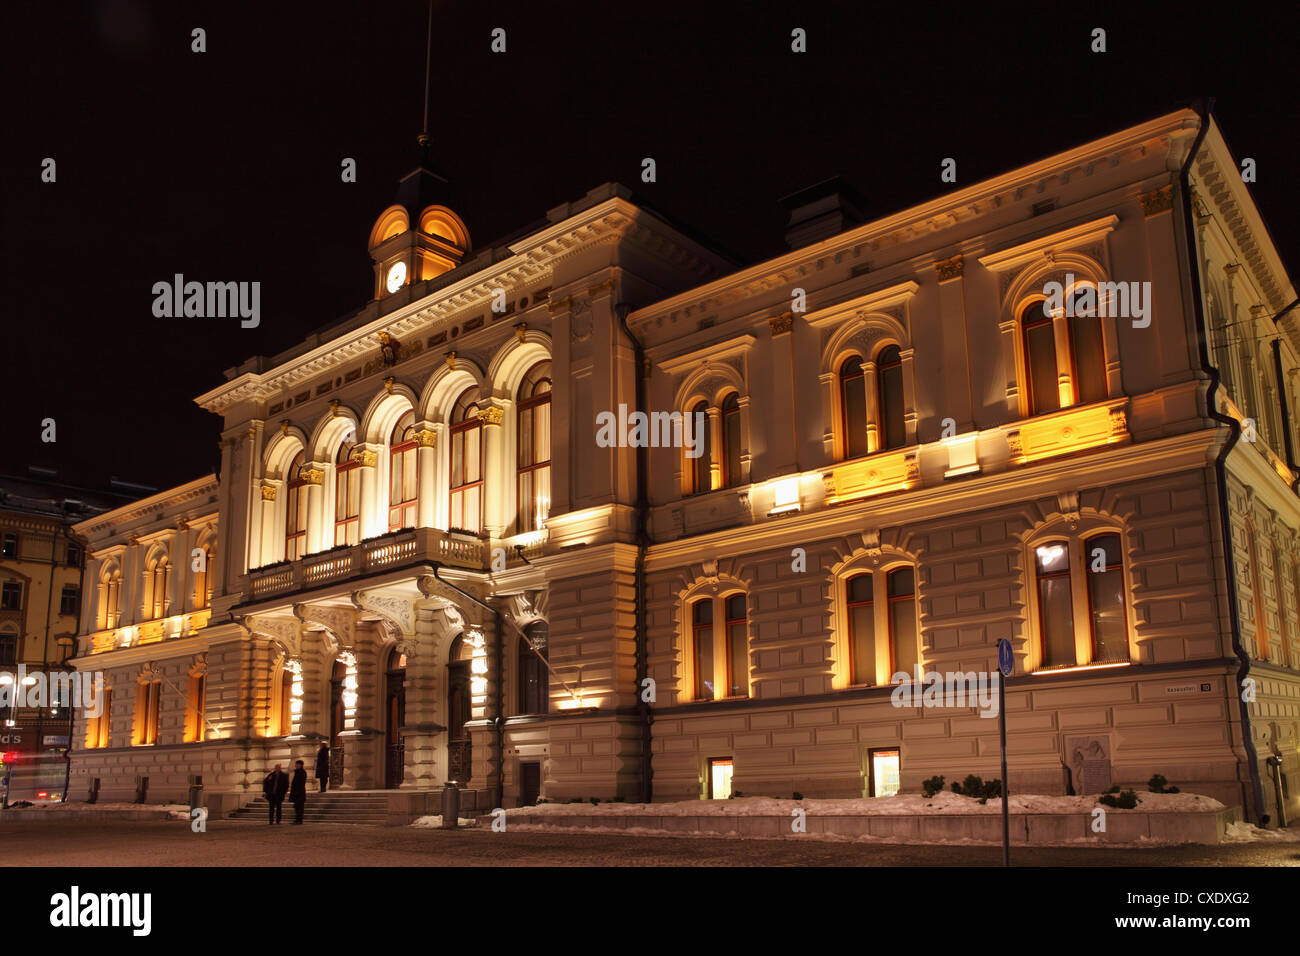 Tampere Town Hall, neo-renaissance style, Georg Schreck designed and built 1890, Central Square (Keskustori), Tampere, - Stock Image